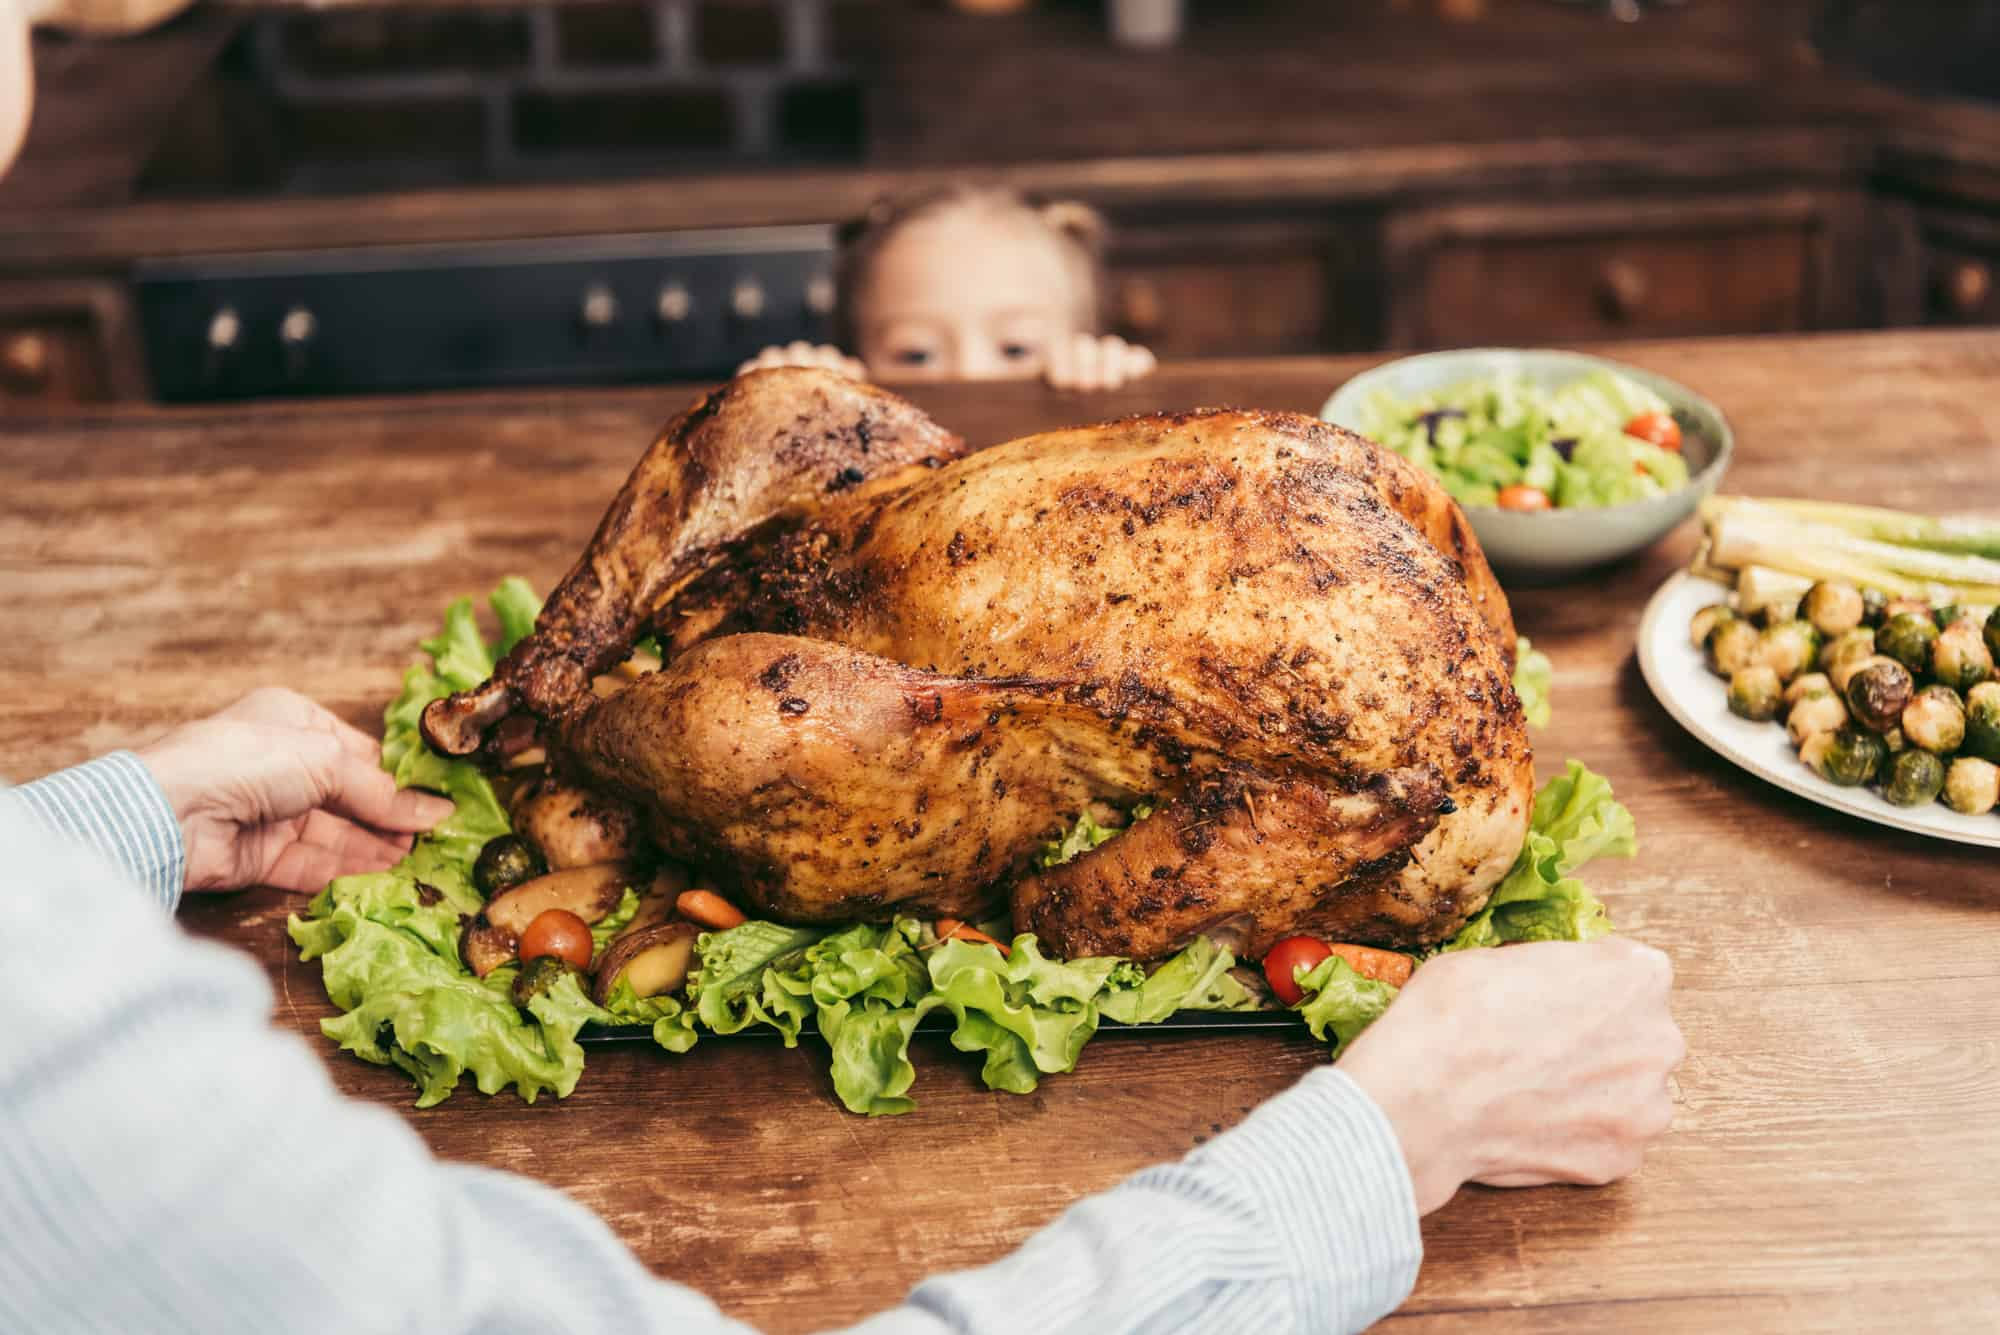 Health Benefits Of Eating Turkey